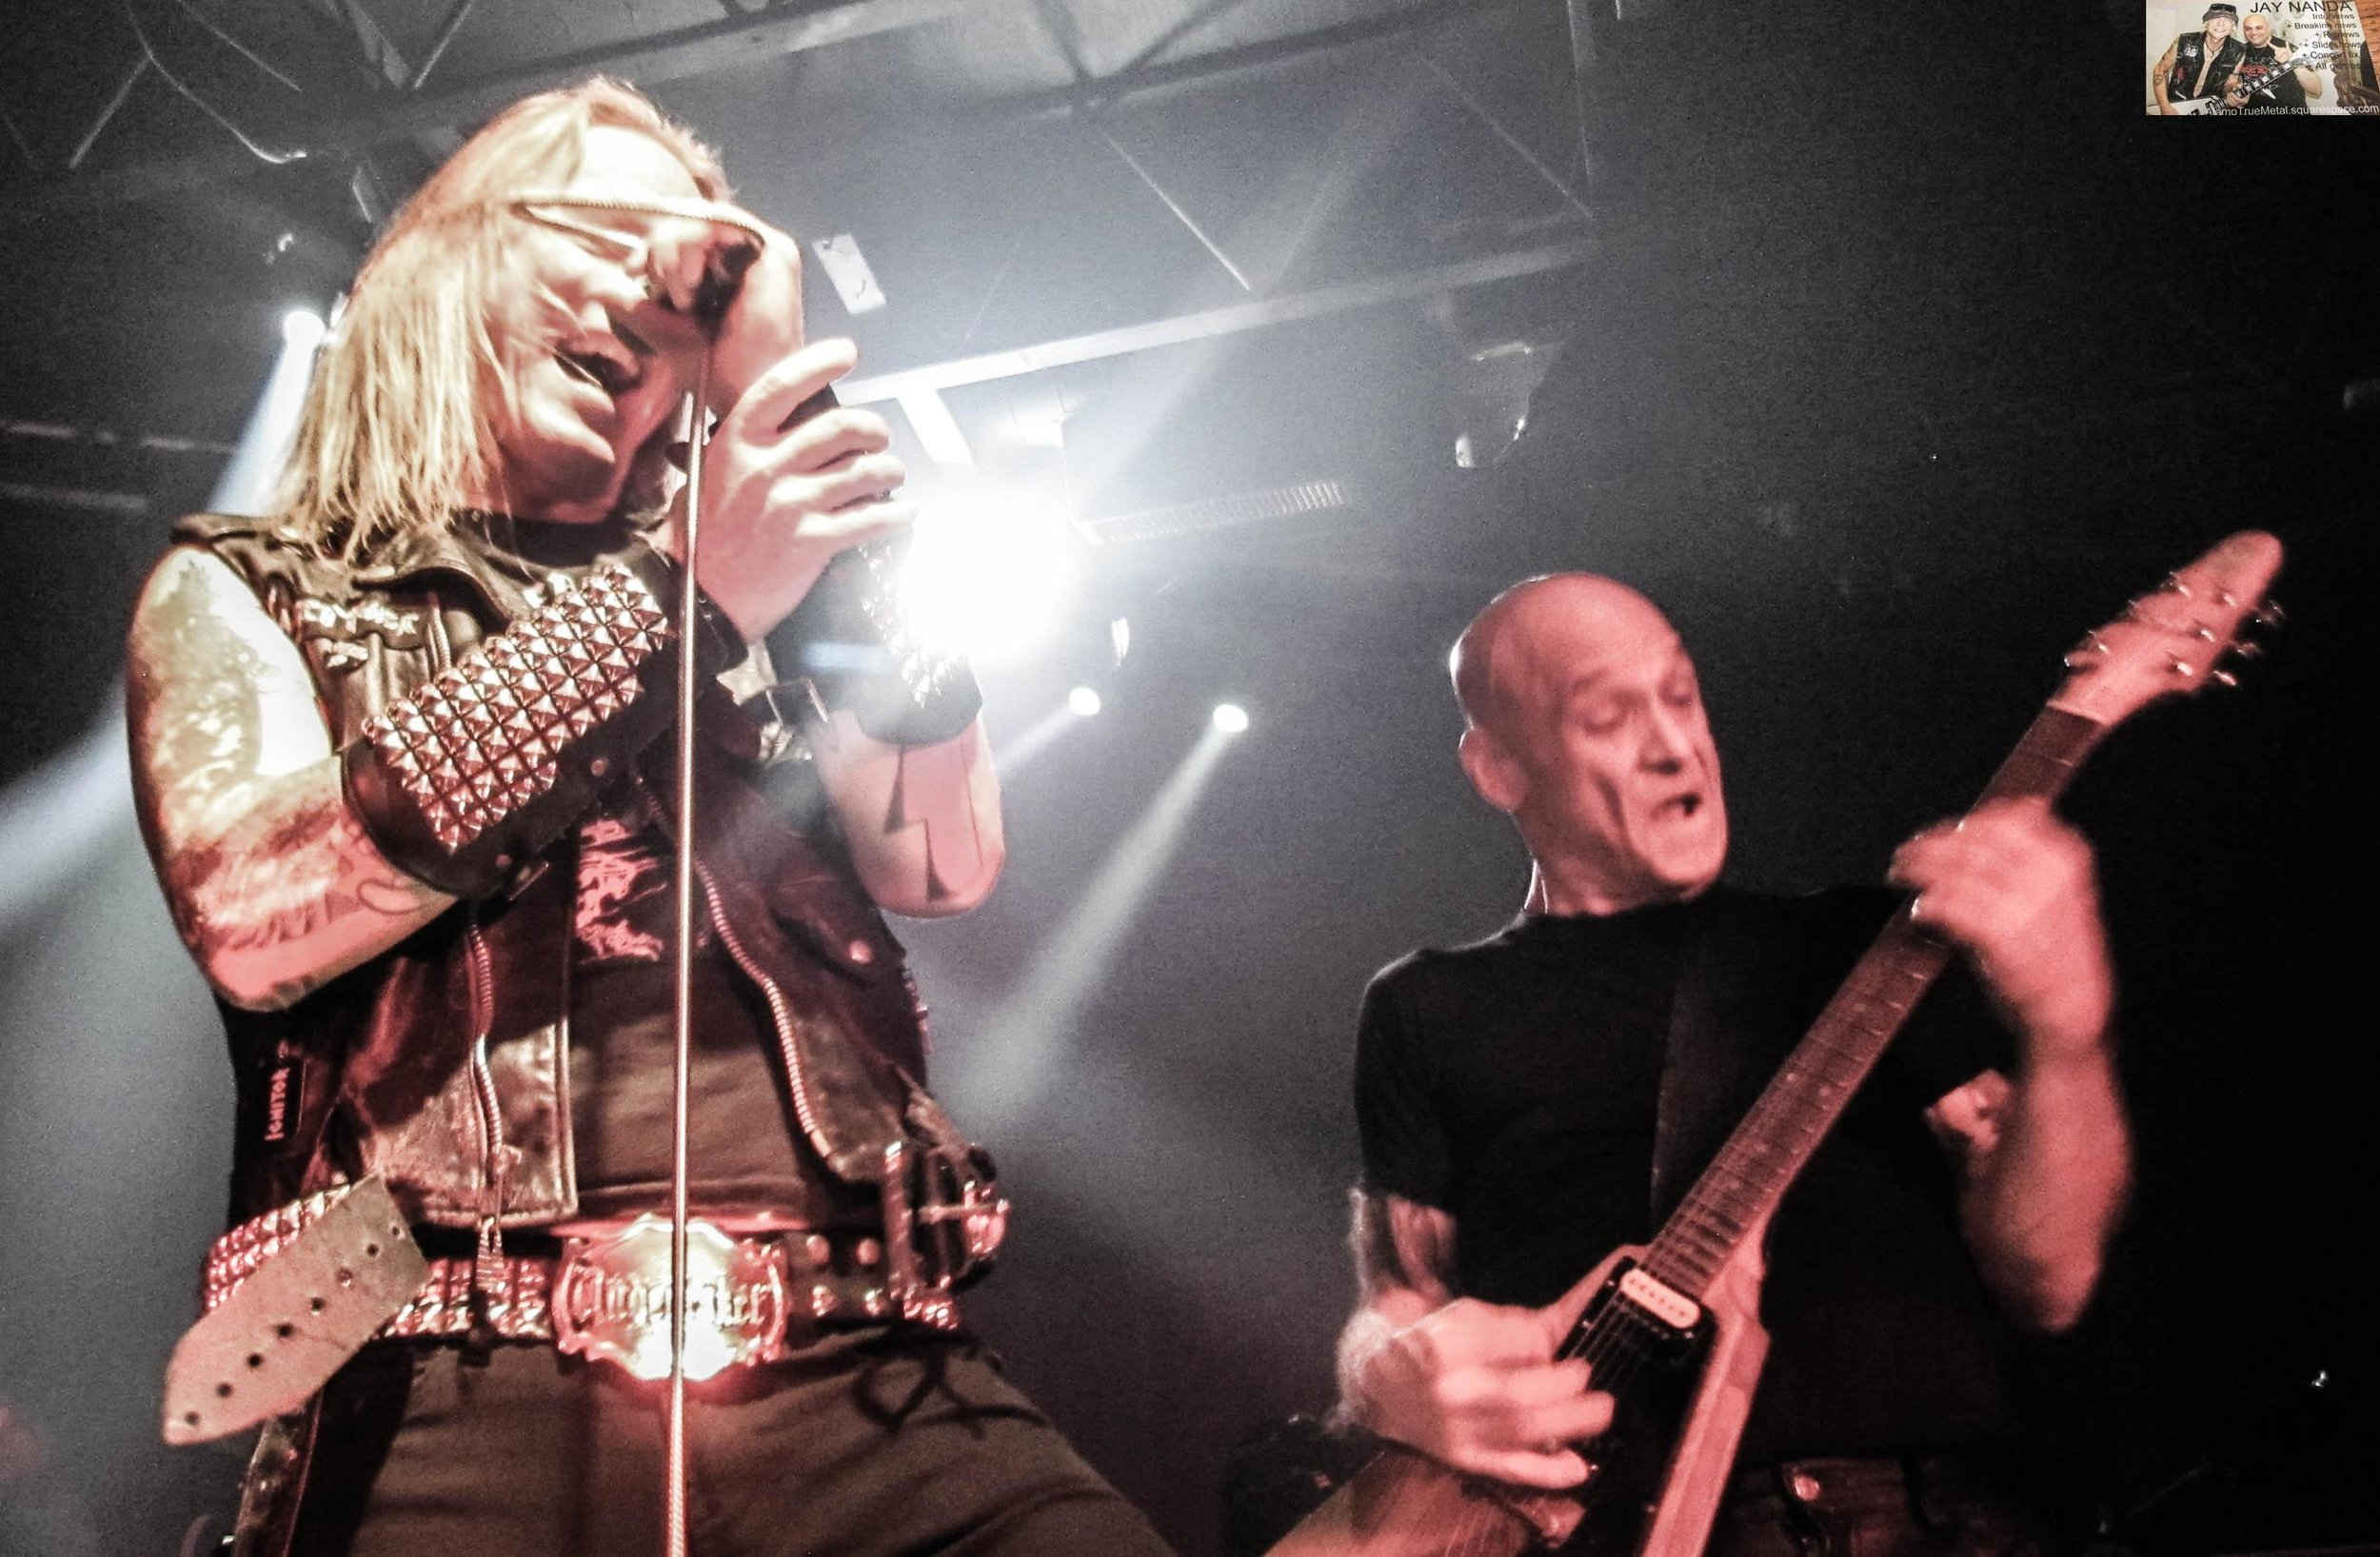 McMaster and Catlin perform a track from S.A. Slayer.